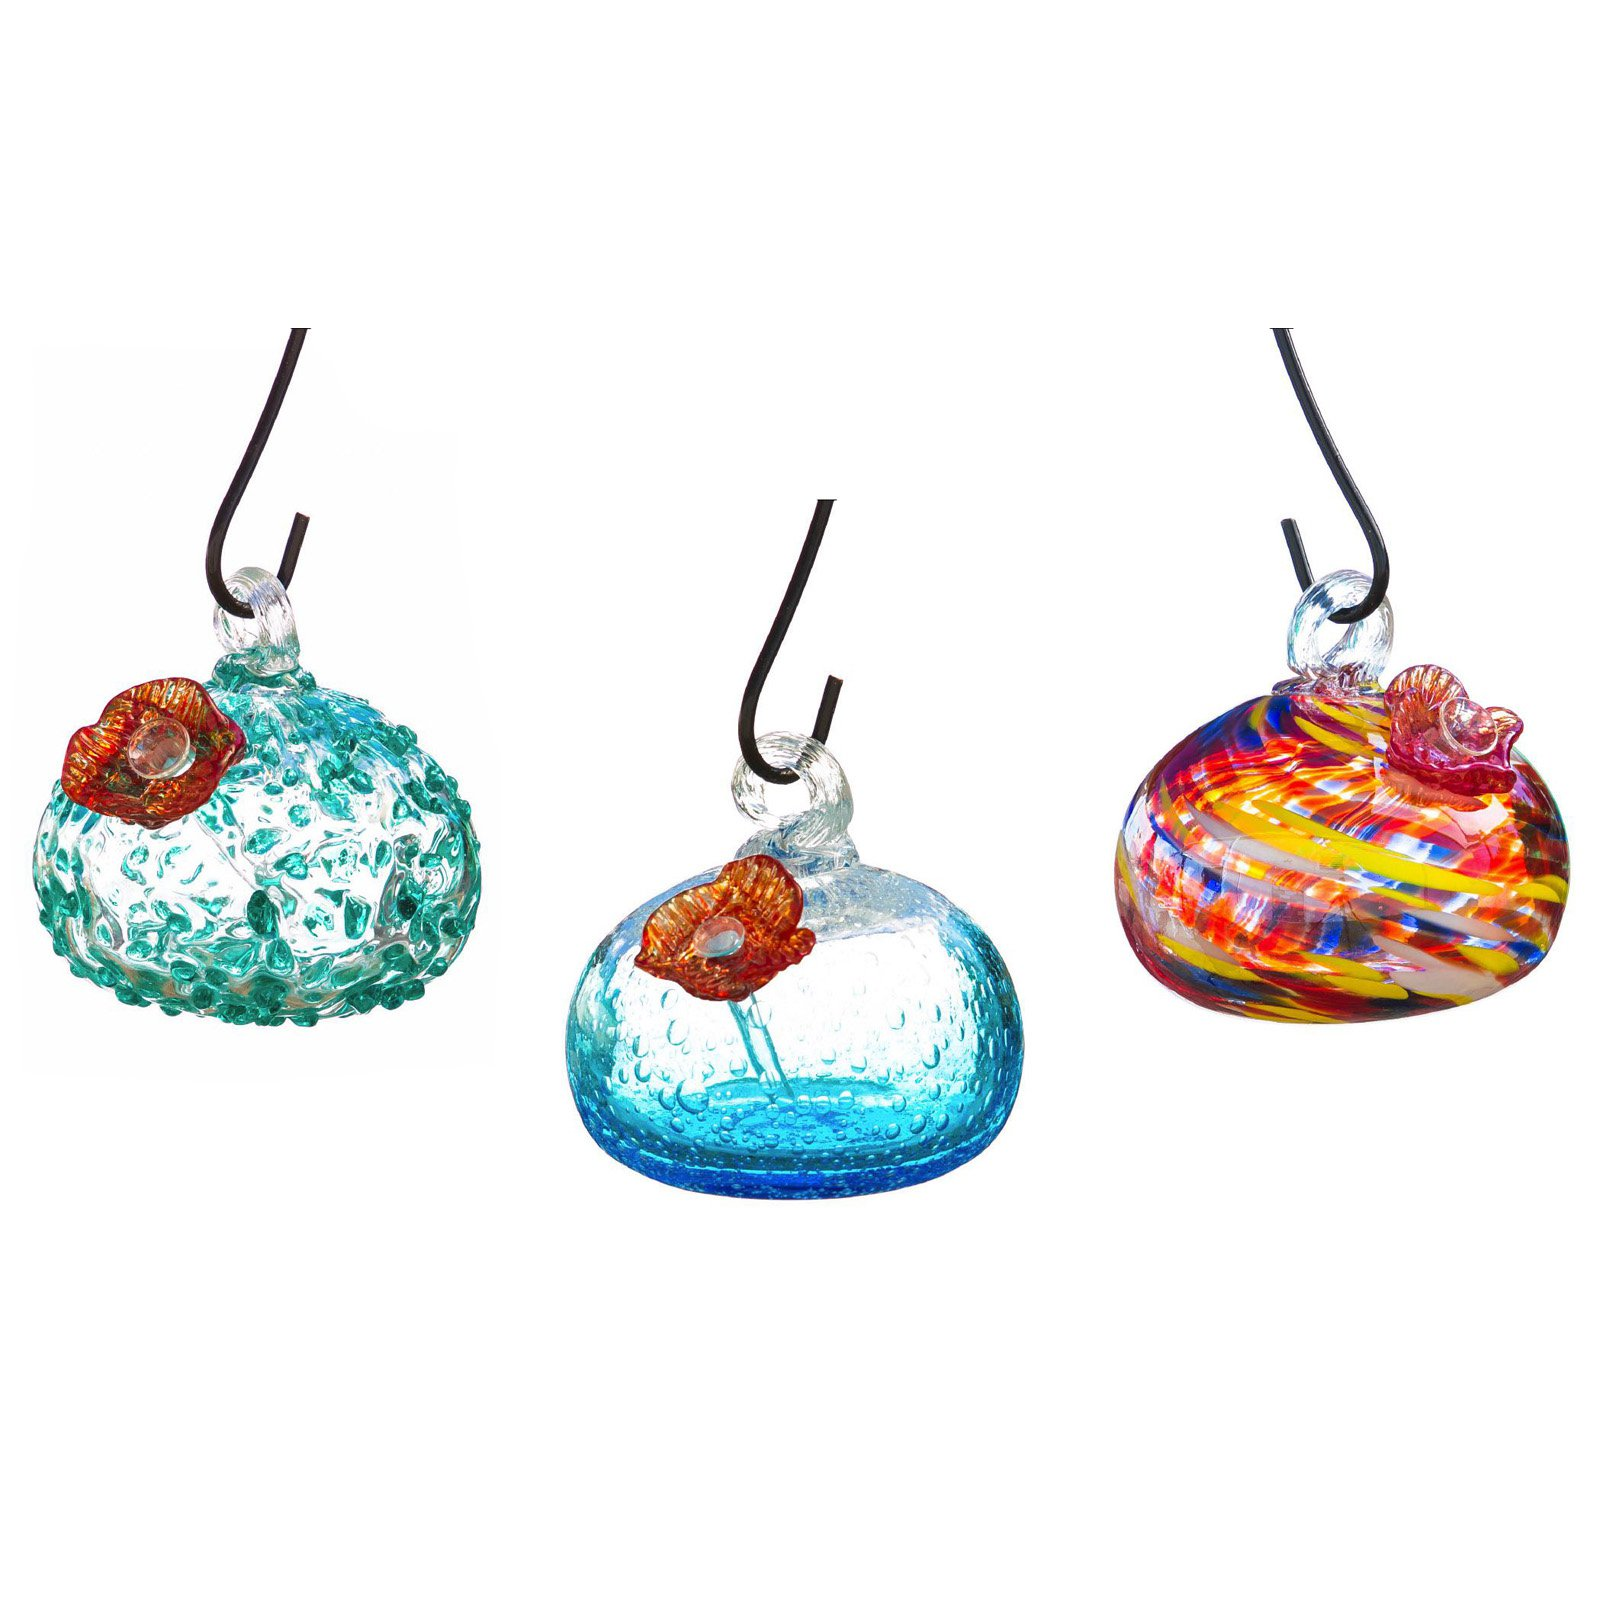 Evergreen Enterprises Hummingbird Feeder Trio